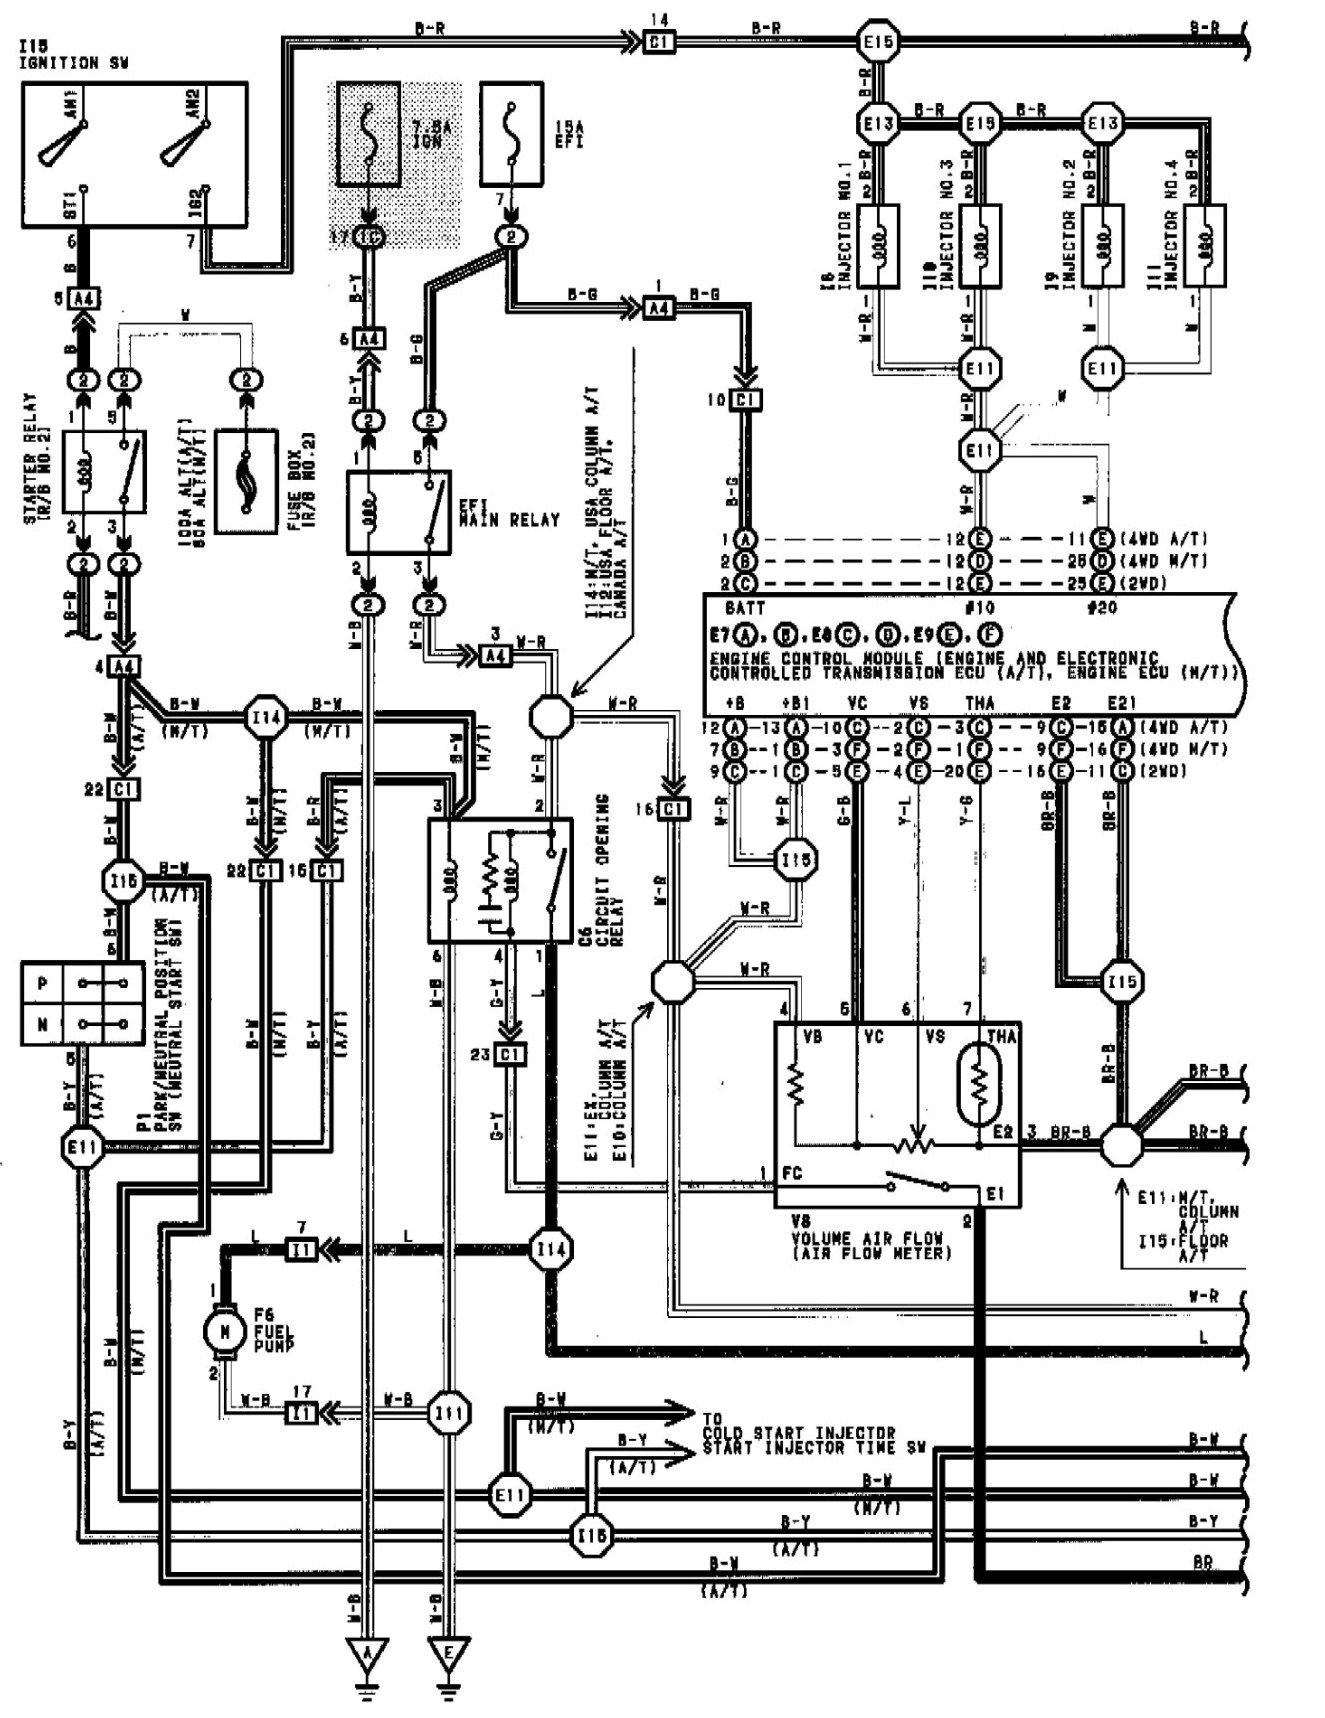 wiring diagram efi poc fslacademy uk 2008 F350 Fuse Panel Diagram efi relay keeps blowing 15 fuse after relay what wiring diagram fiat doblo wiring diagram